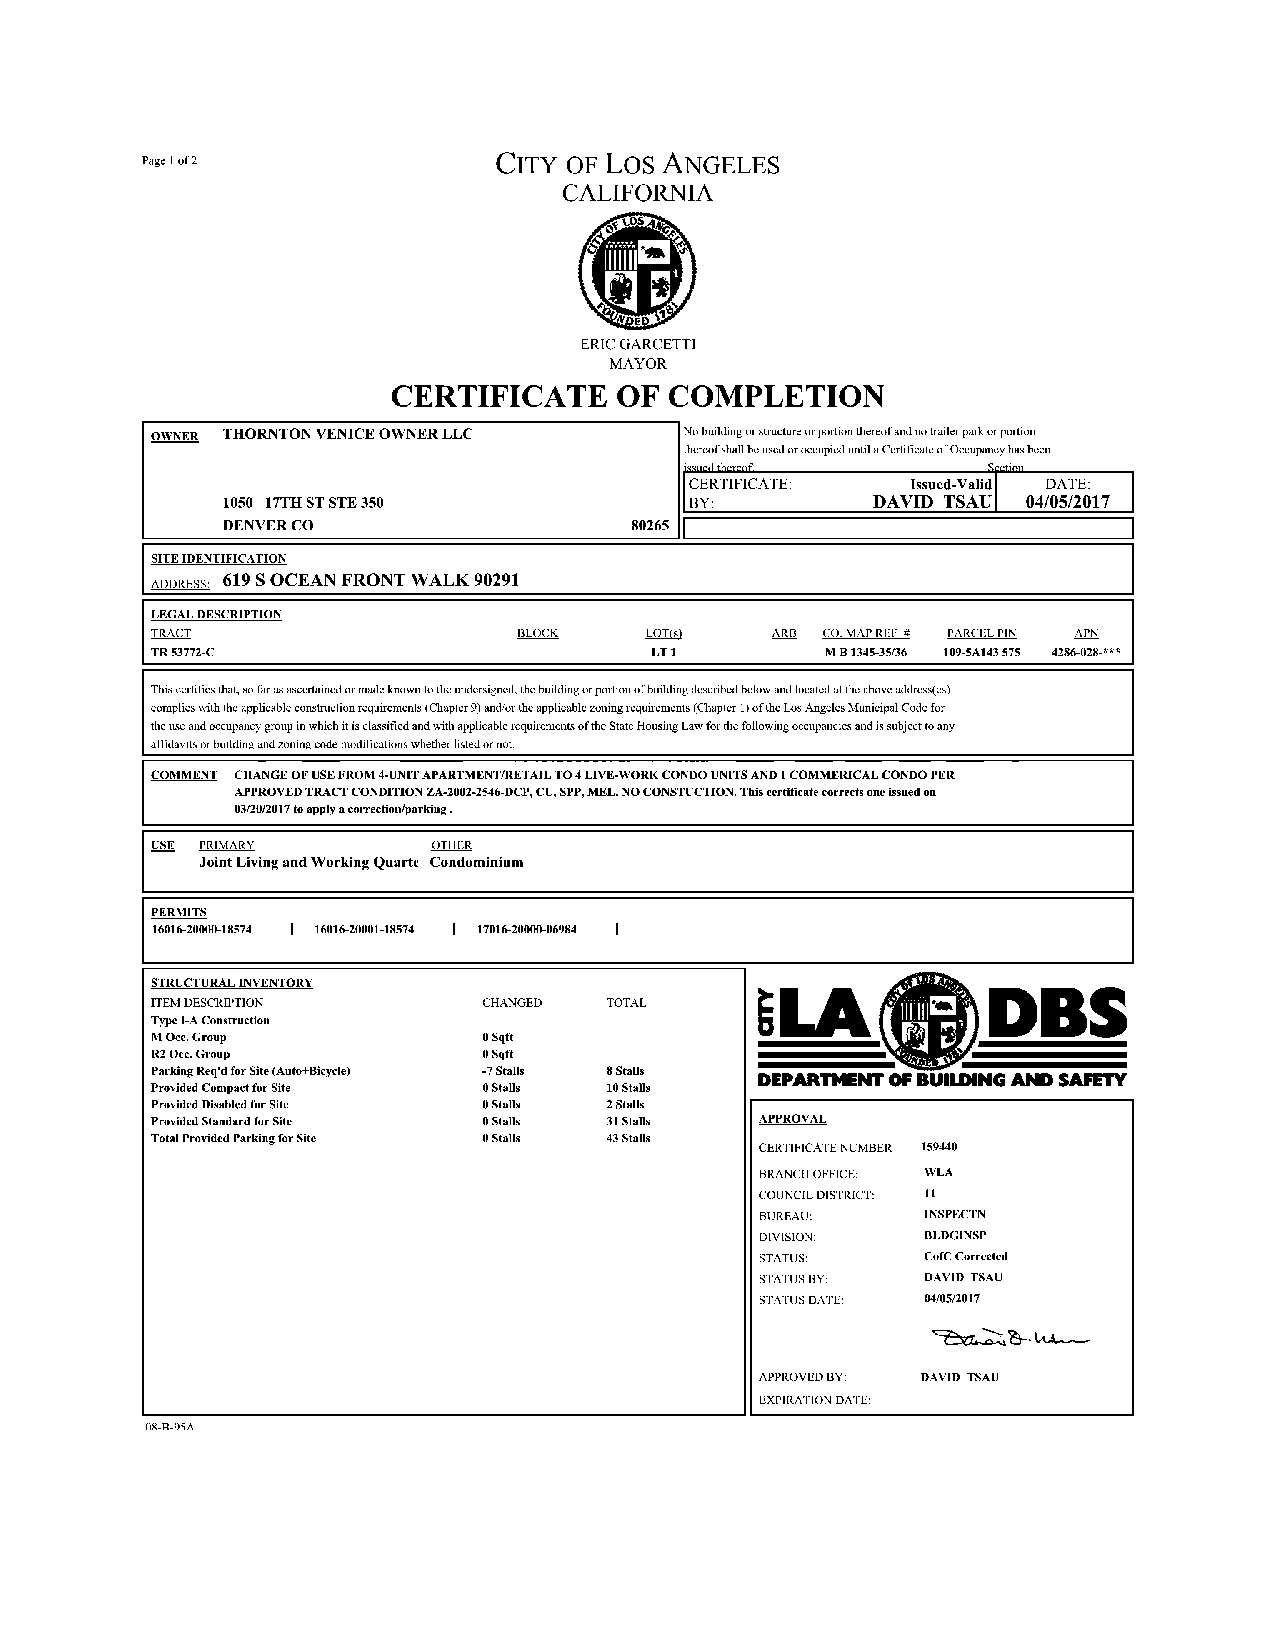 17016-20000-06984_Cert of Occupancy_619 Ocean Front_4.5.2017 _Page_1.png